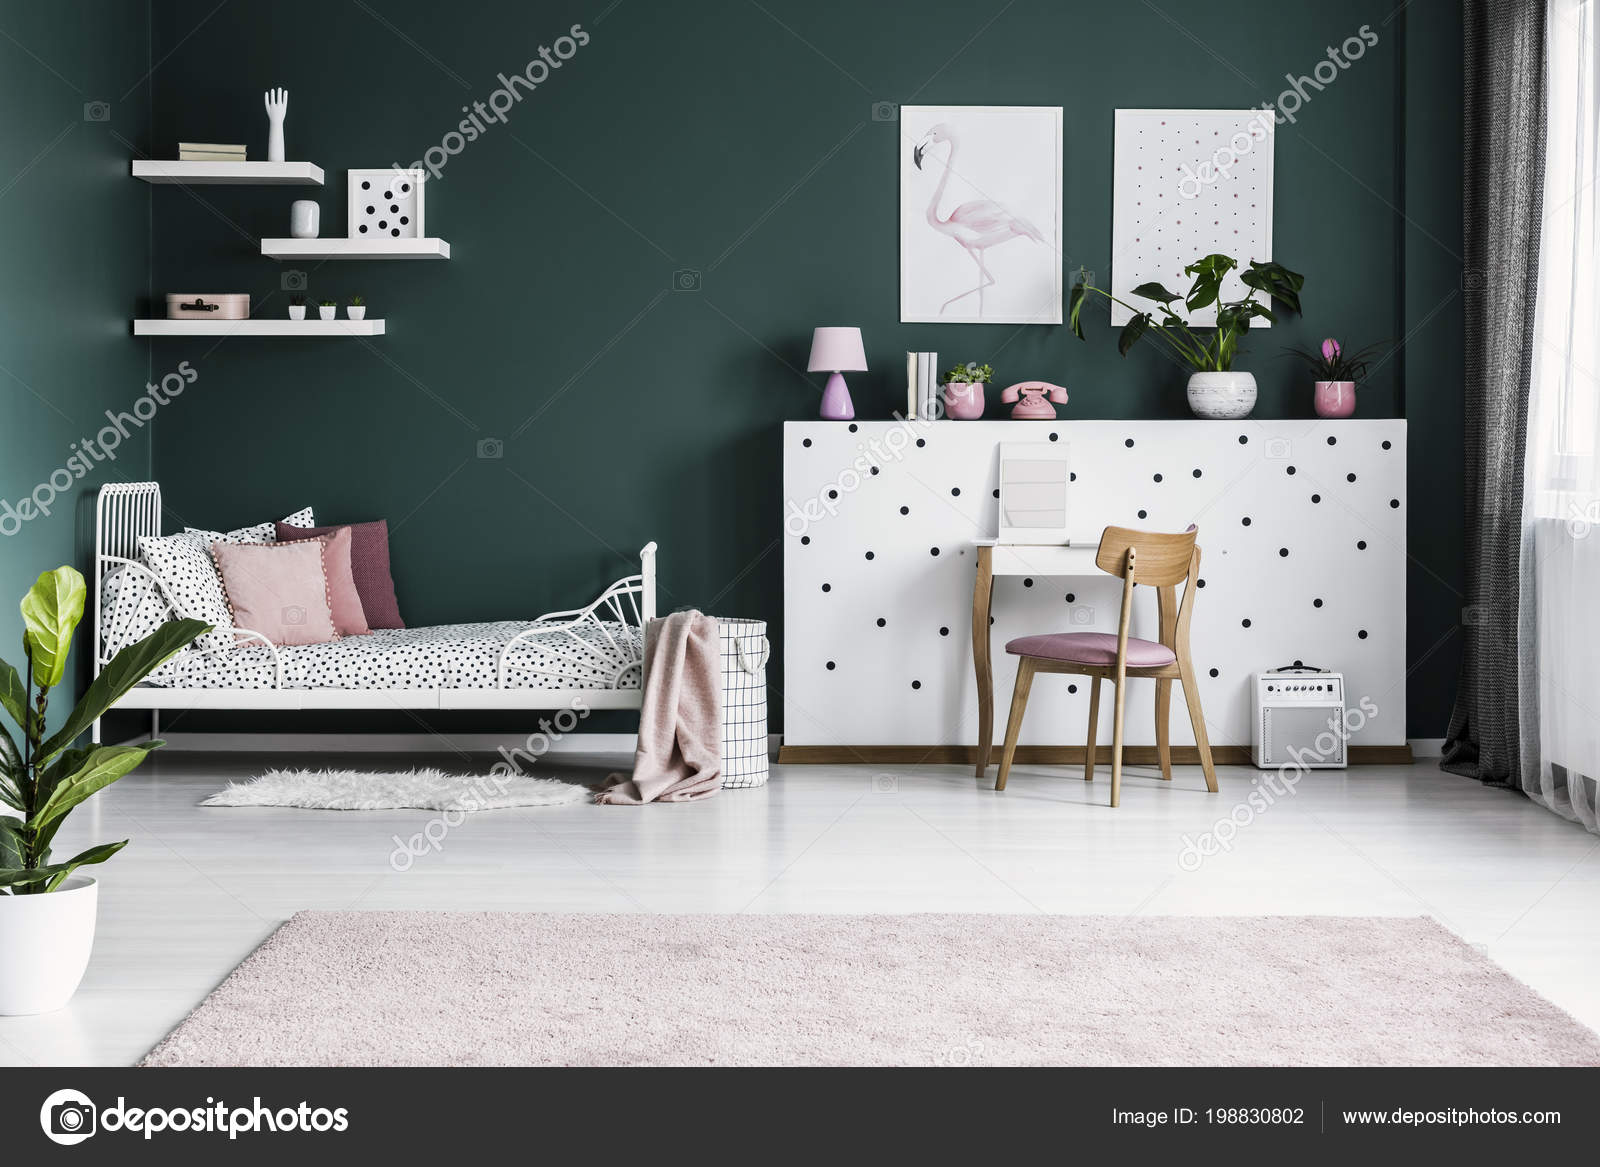 Posters Green Wall Girl Bedroom Interior White Bed Wooden ...